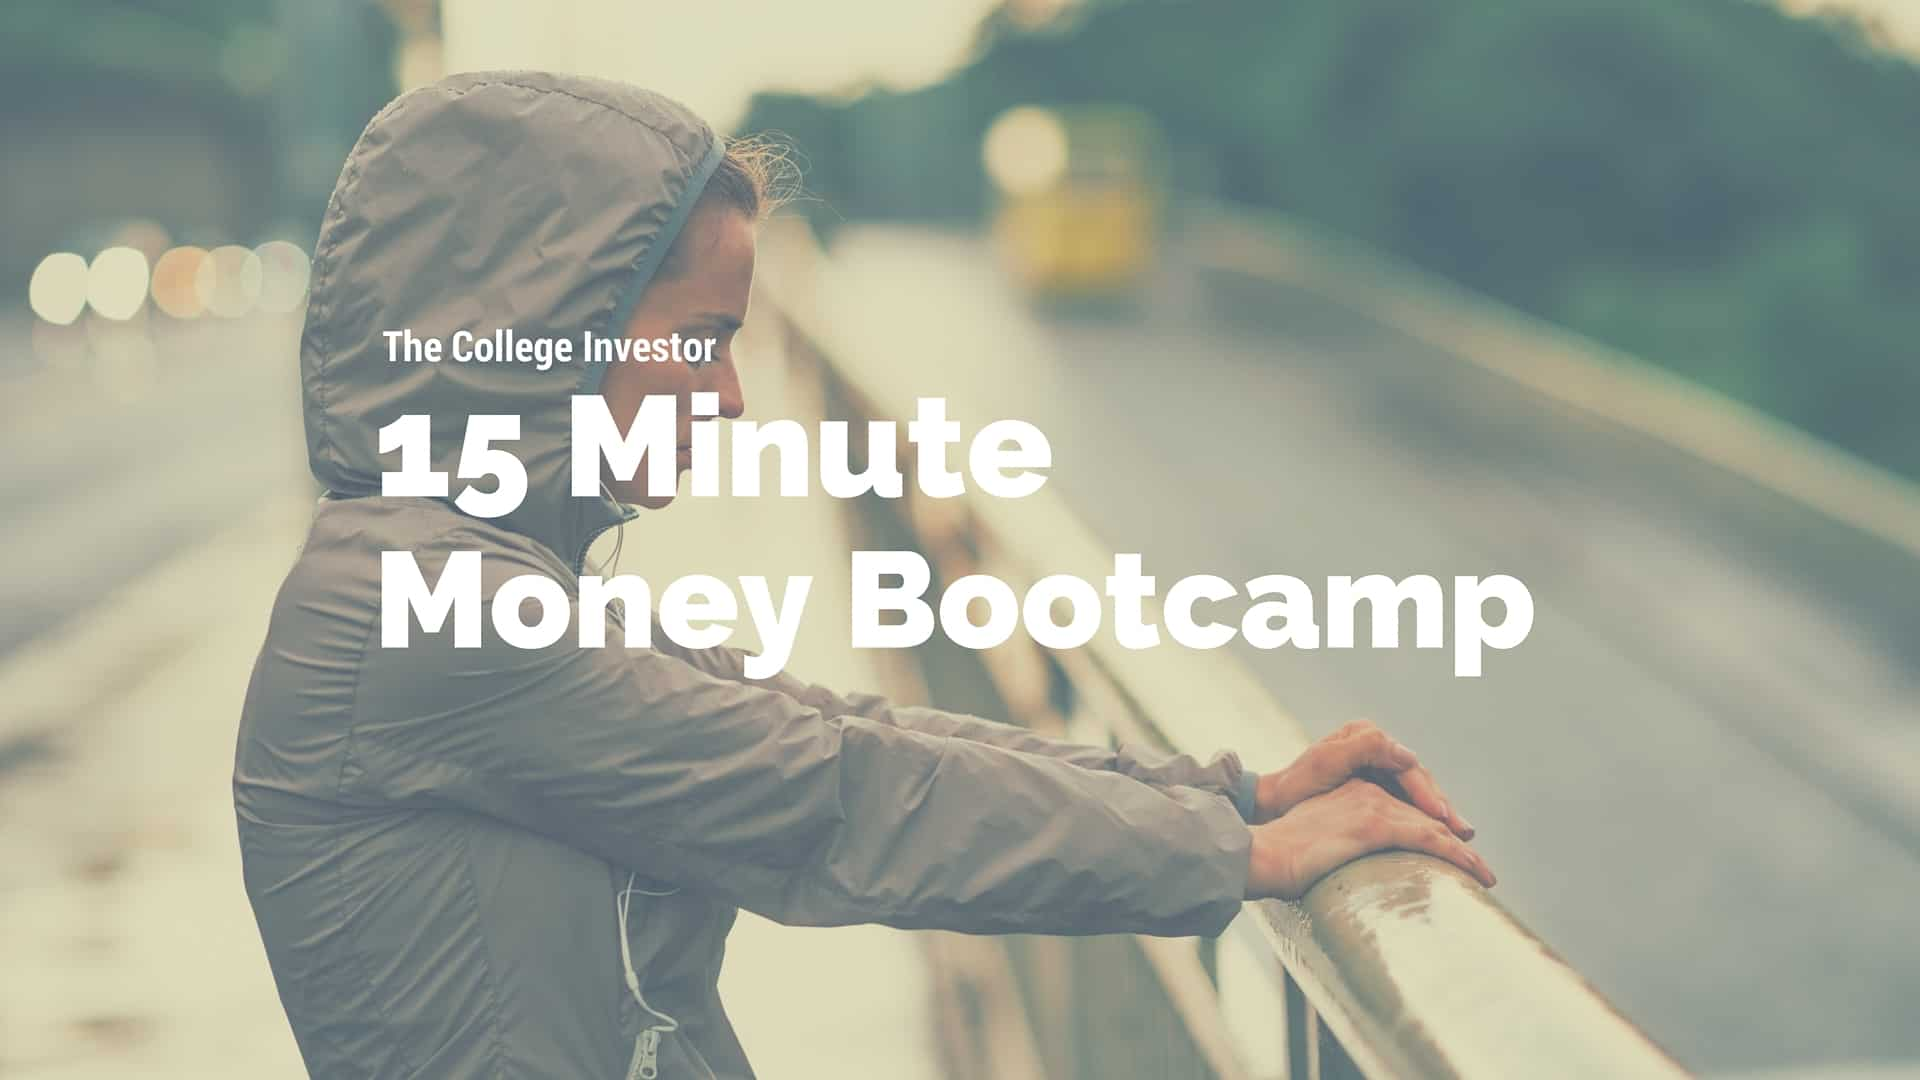 Each week The College Investor hosts a 15 Minute Money Bootcamp on Facebook Live to share actionable money tips for millennials.